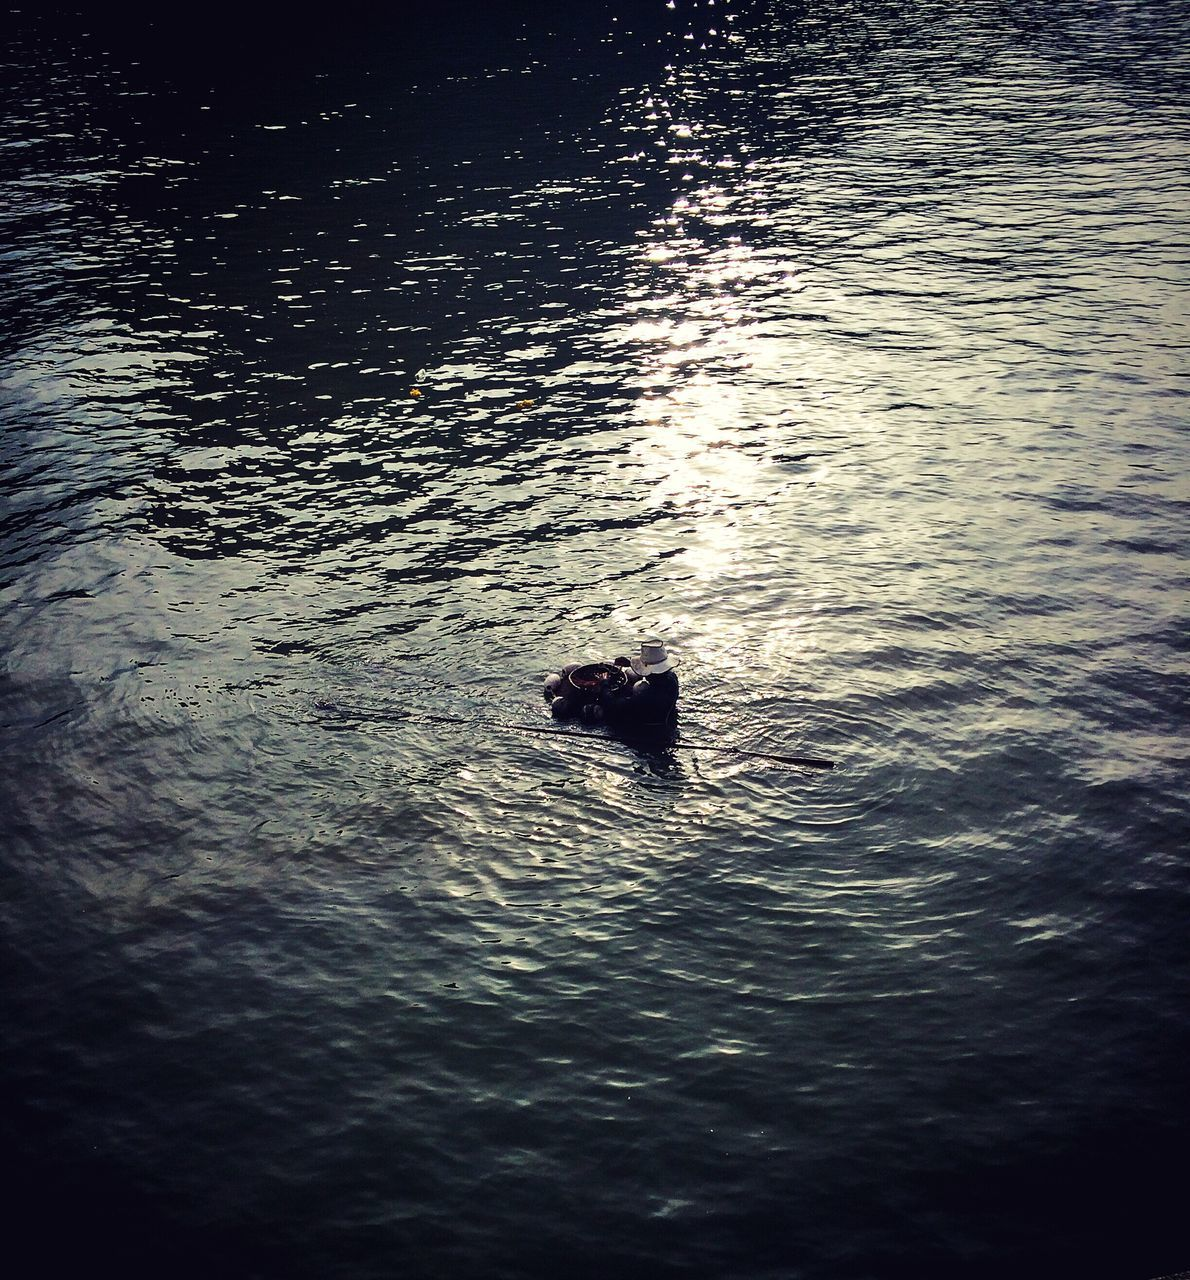 water, animal themes, waterfront, one animal, swimming, nature, animals in the wild, high angle view, rippled, outdoors, no people, silhouette, lake, beauty in nature, animal wildlife, day, sunset, mammal, bird, swan